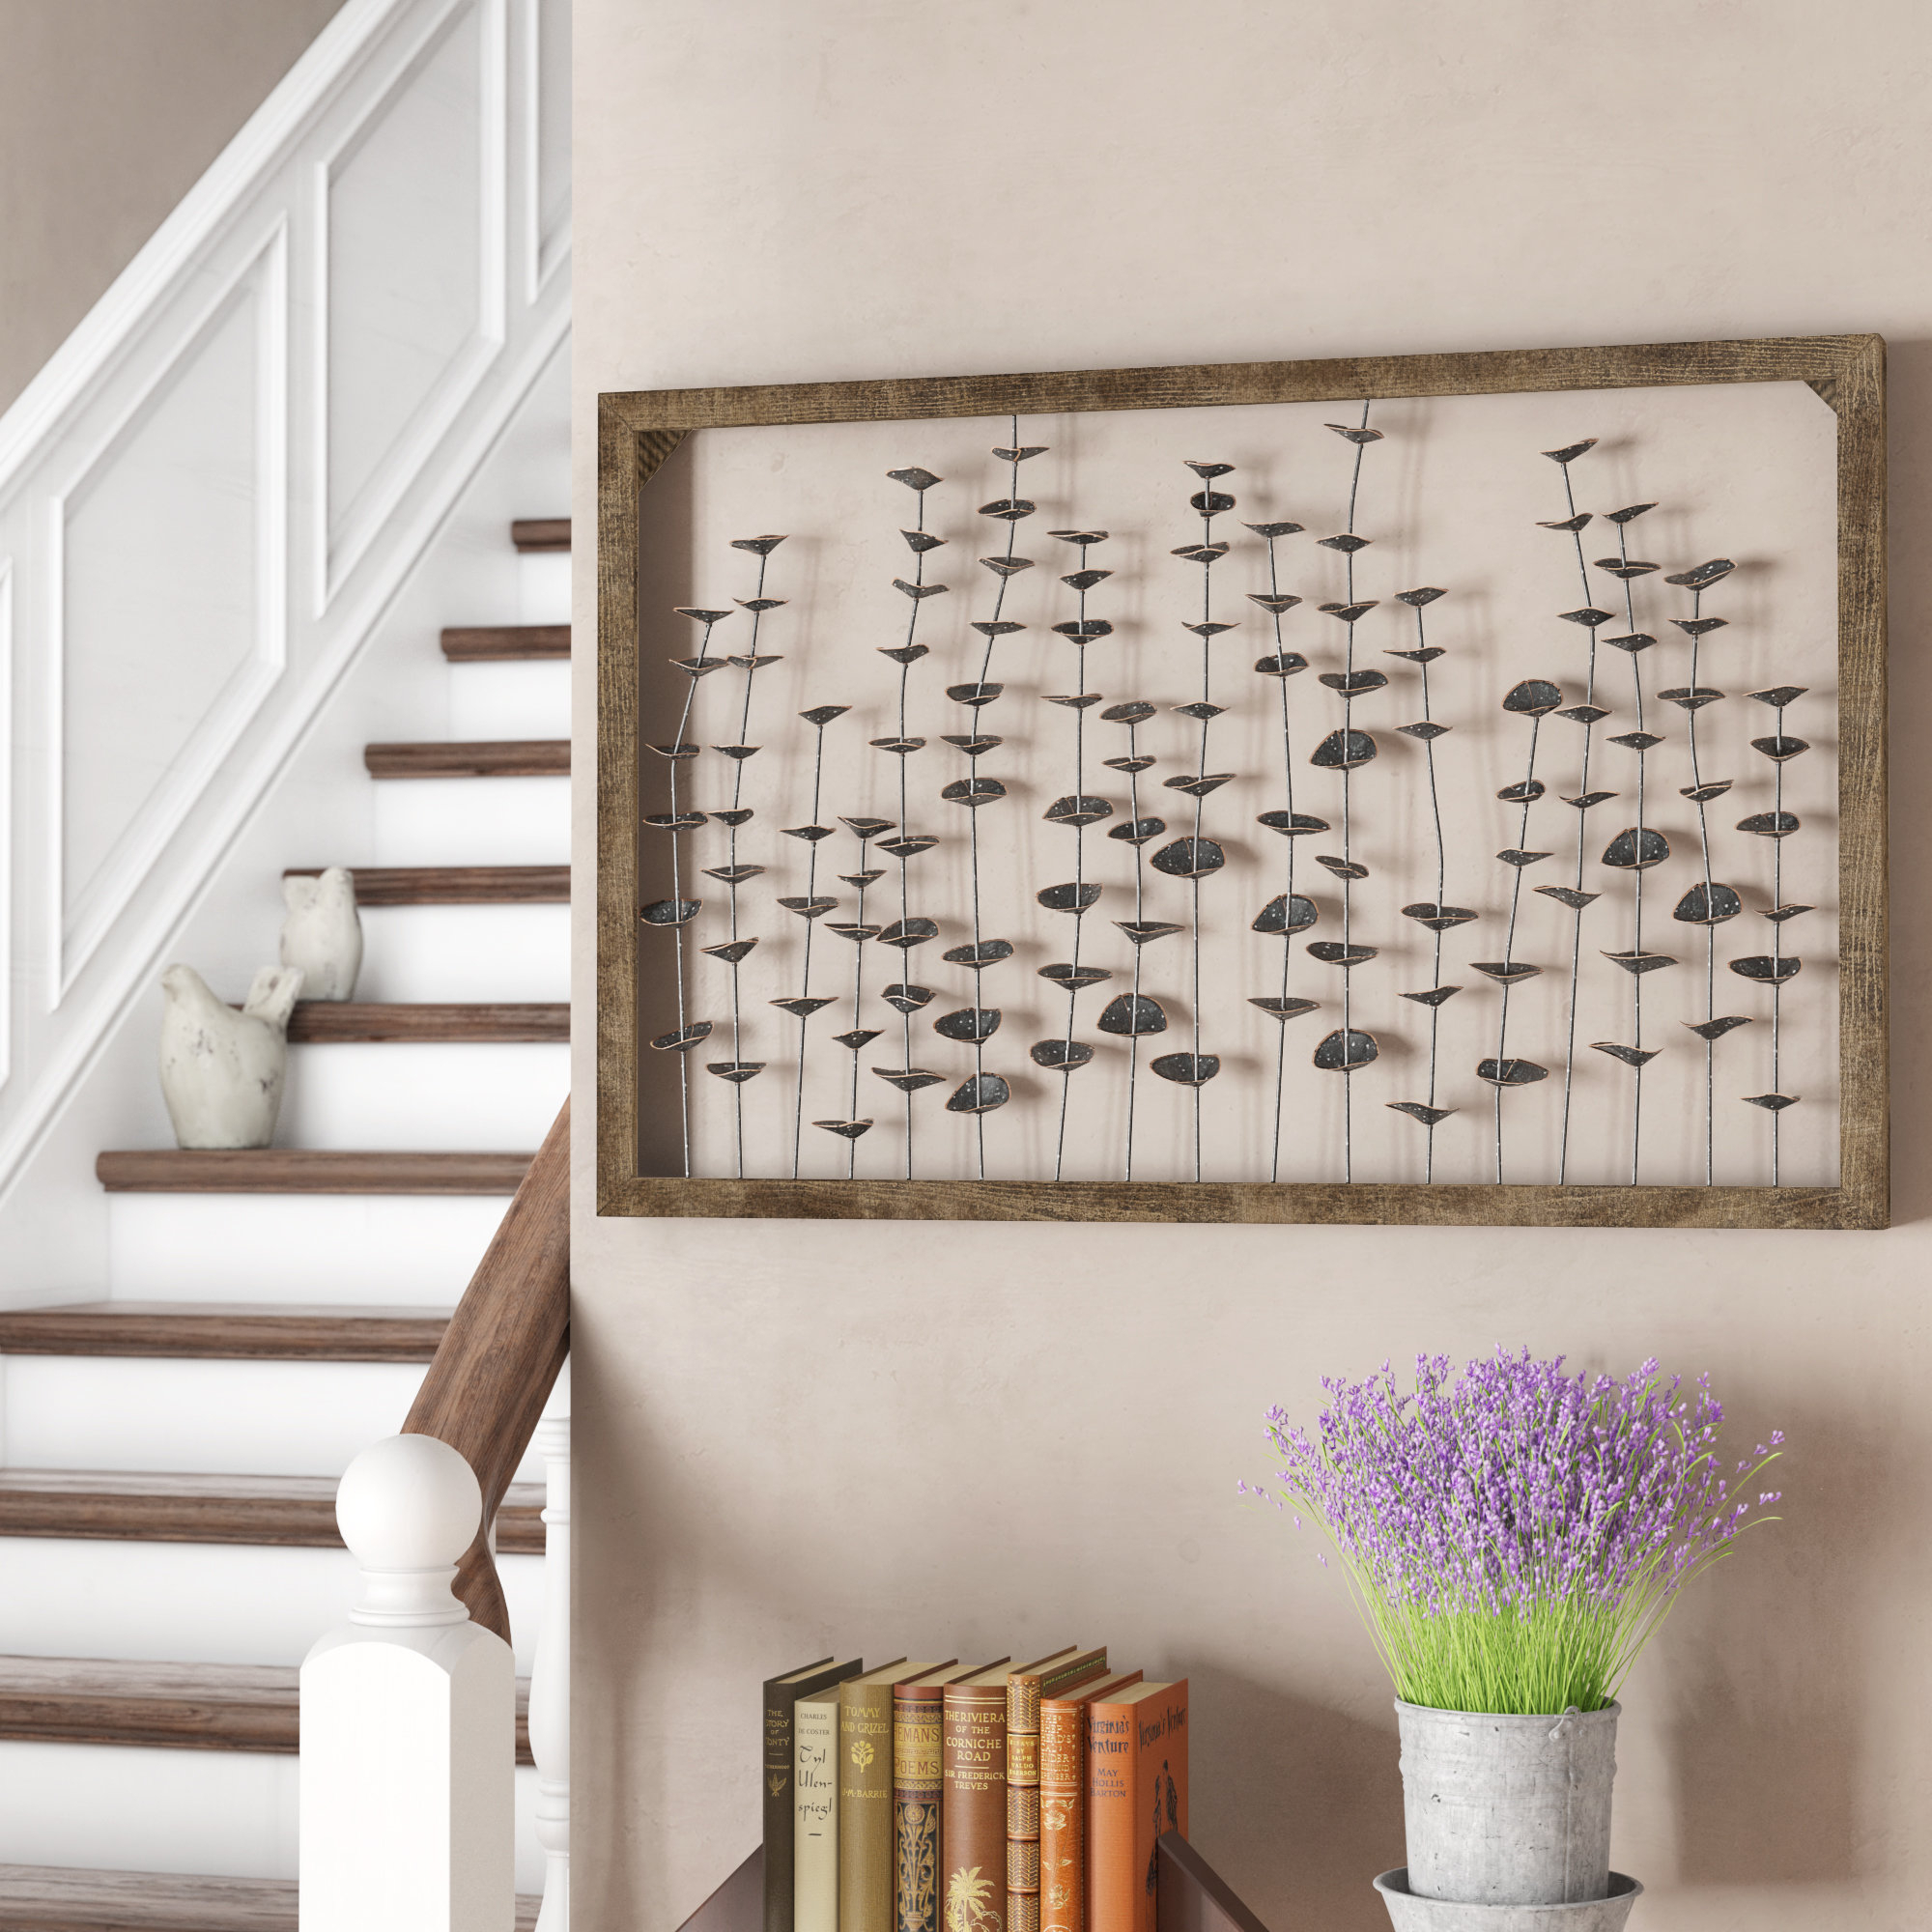 Metal Letter Wall Art | Wayfair pertaining to Metal Leaf Wall Decor by Red Barrel Studio (Image 15 of 30)